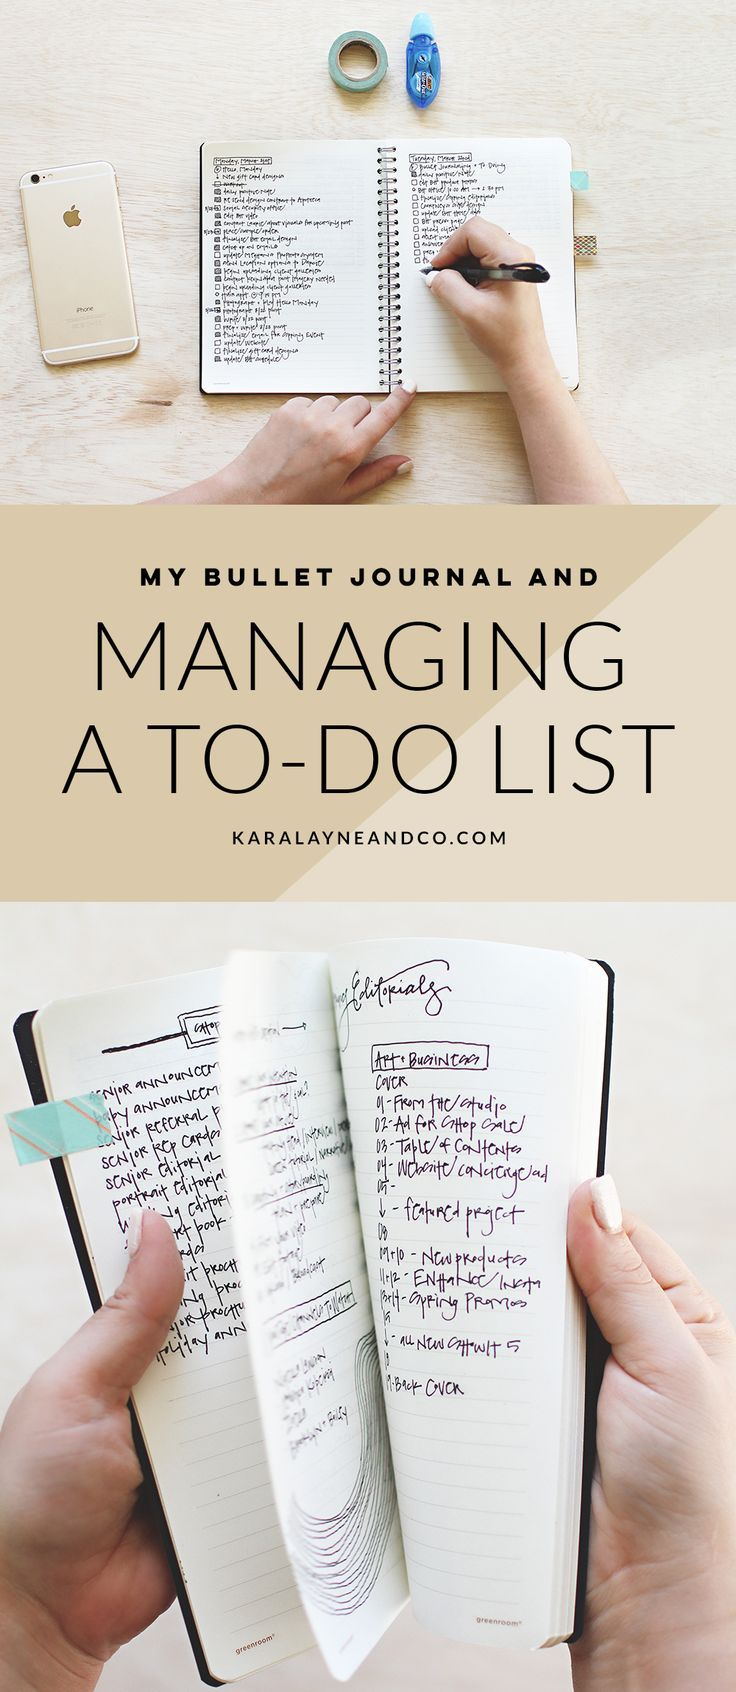 My bullet journal and managing a to-do list   #Organization #BulletJournal